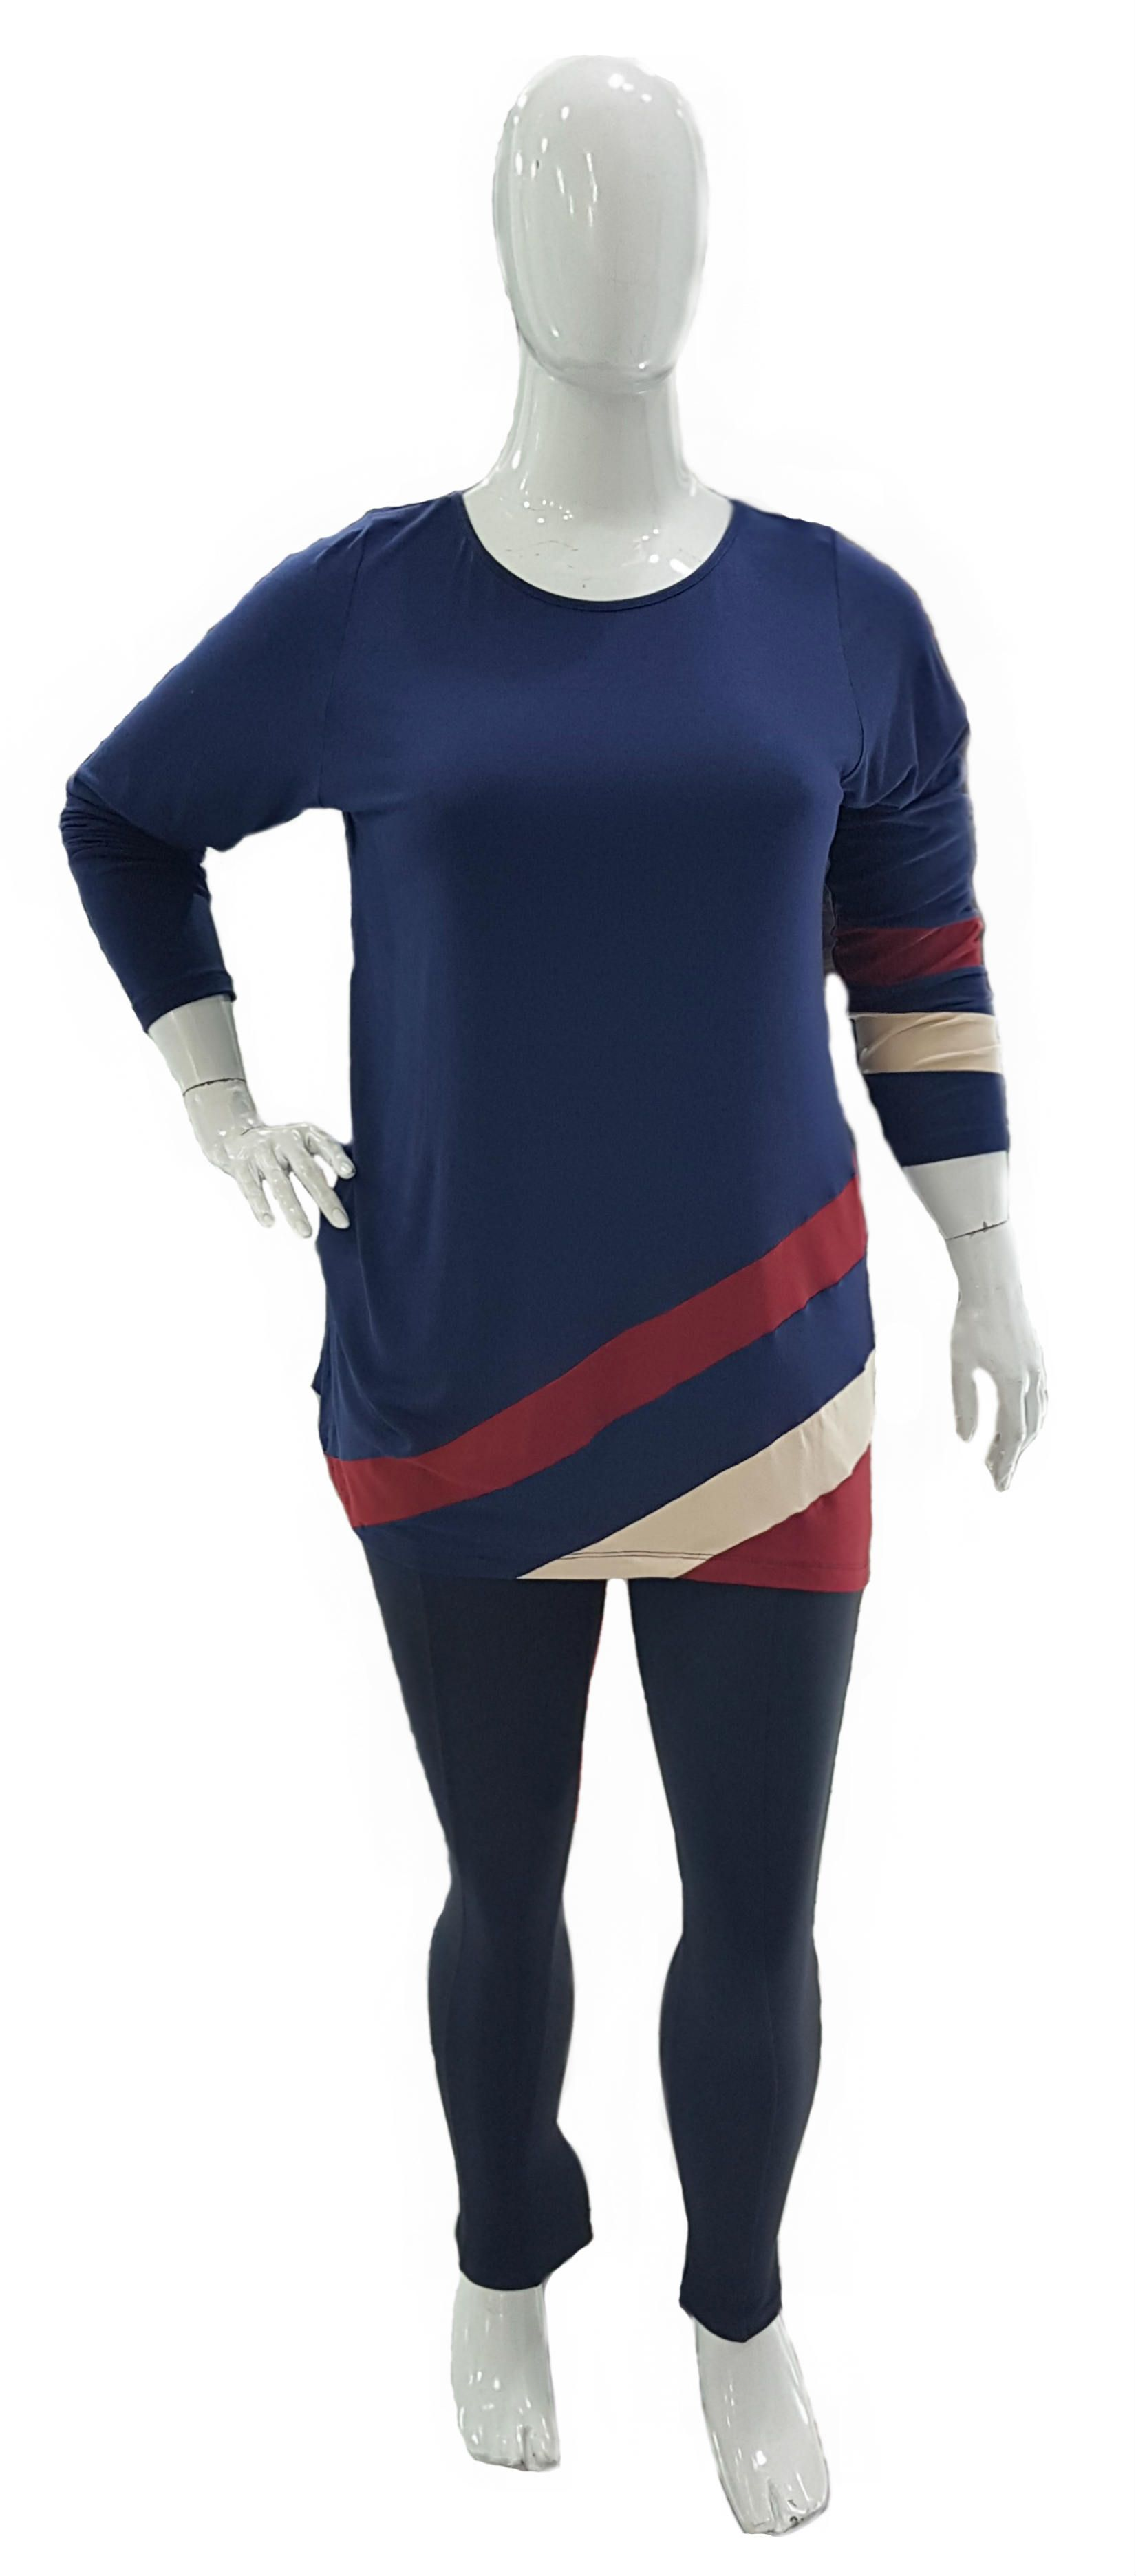 Blusa Plus Size Listras Viscose com Elastano Ref 03054 / Legging Plus Size Cotton Ref 01183